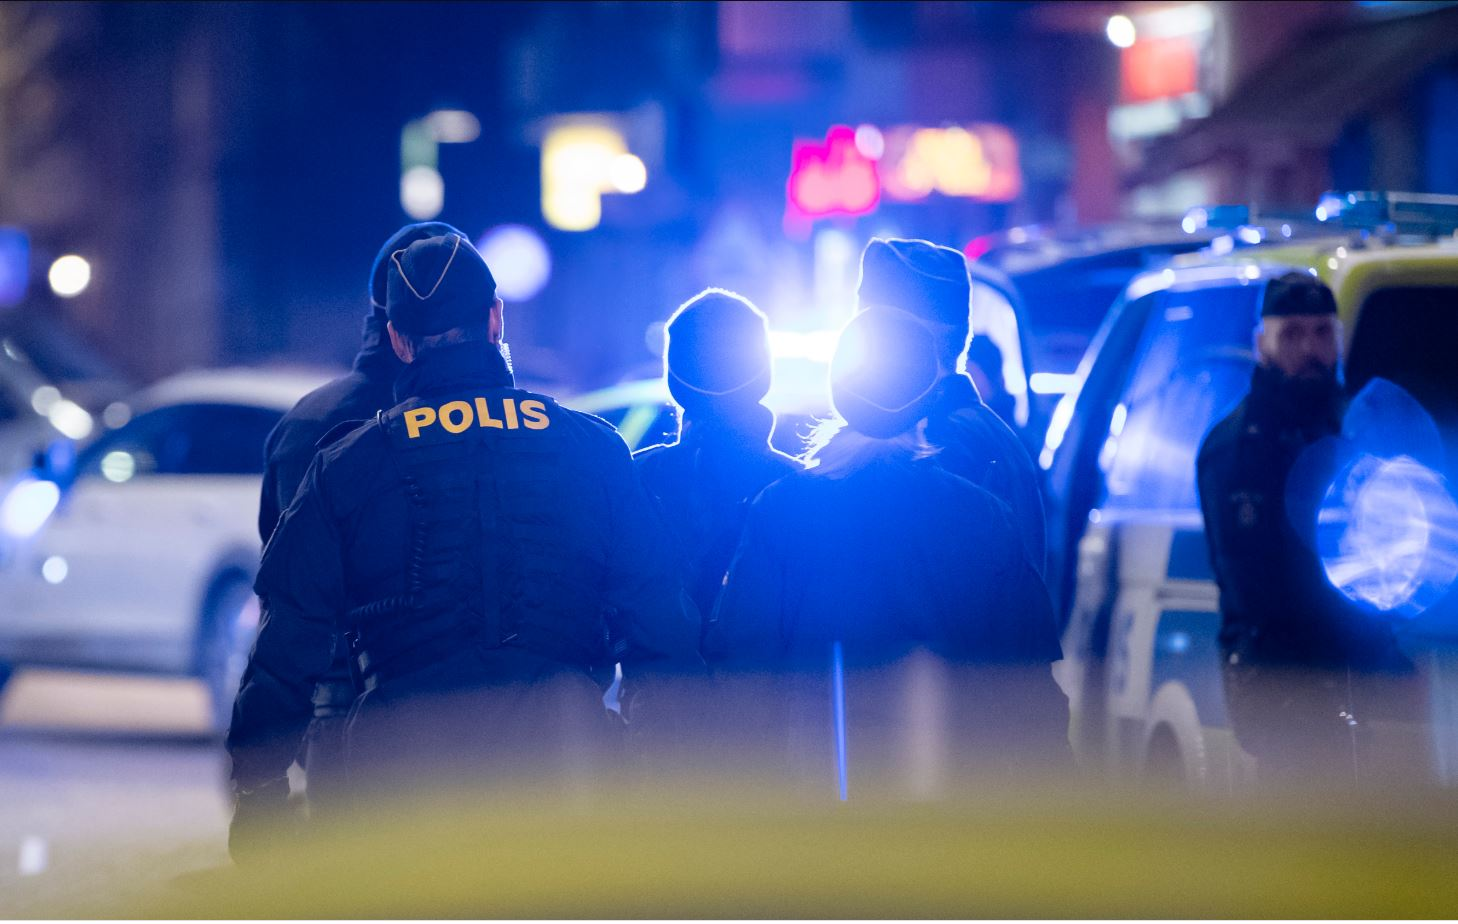 Malmö: Police officers are also vulnerable